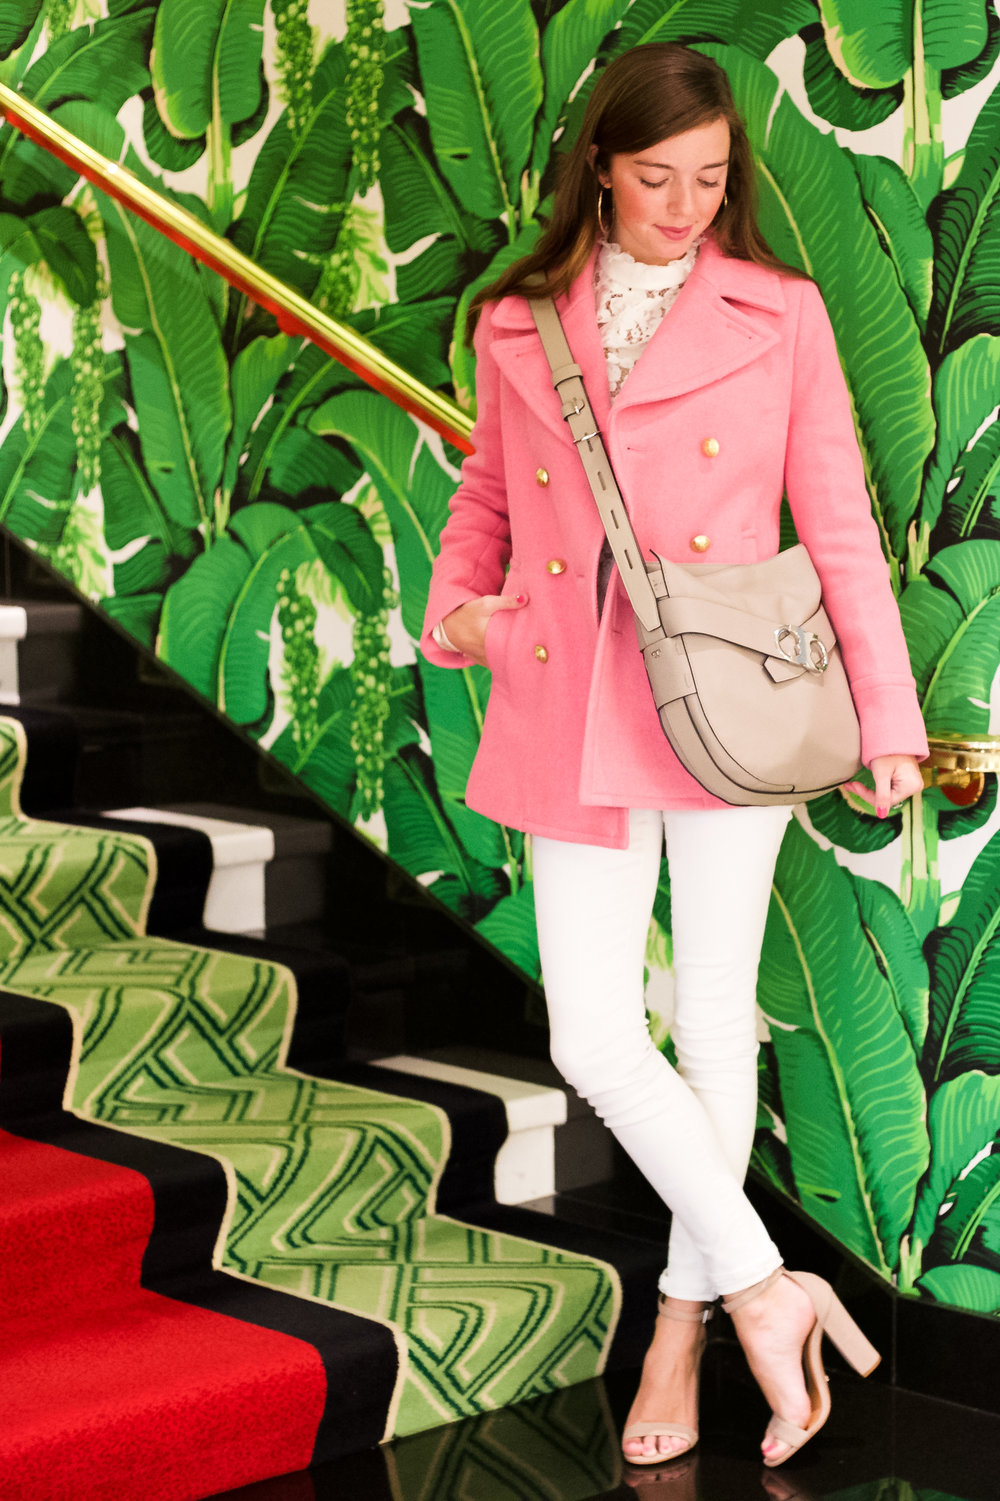 fashion blogger lcb style greenbrier tory burch j. crew (11 of 14).jpg